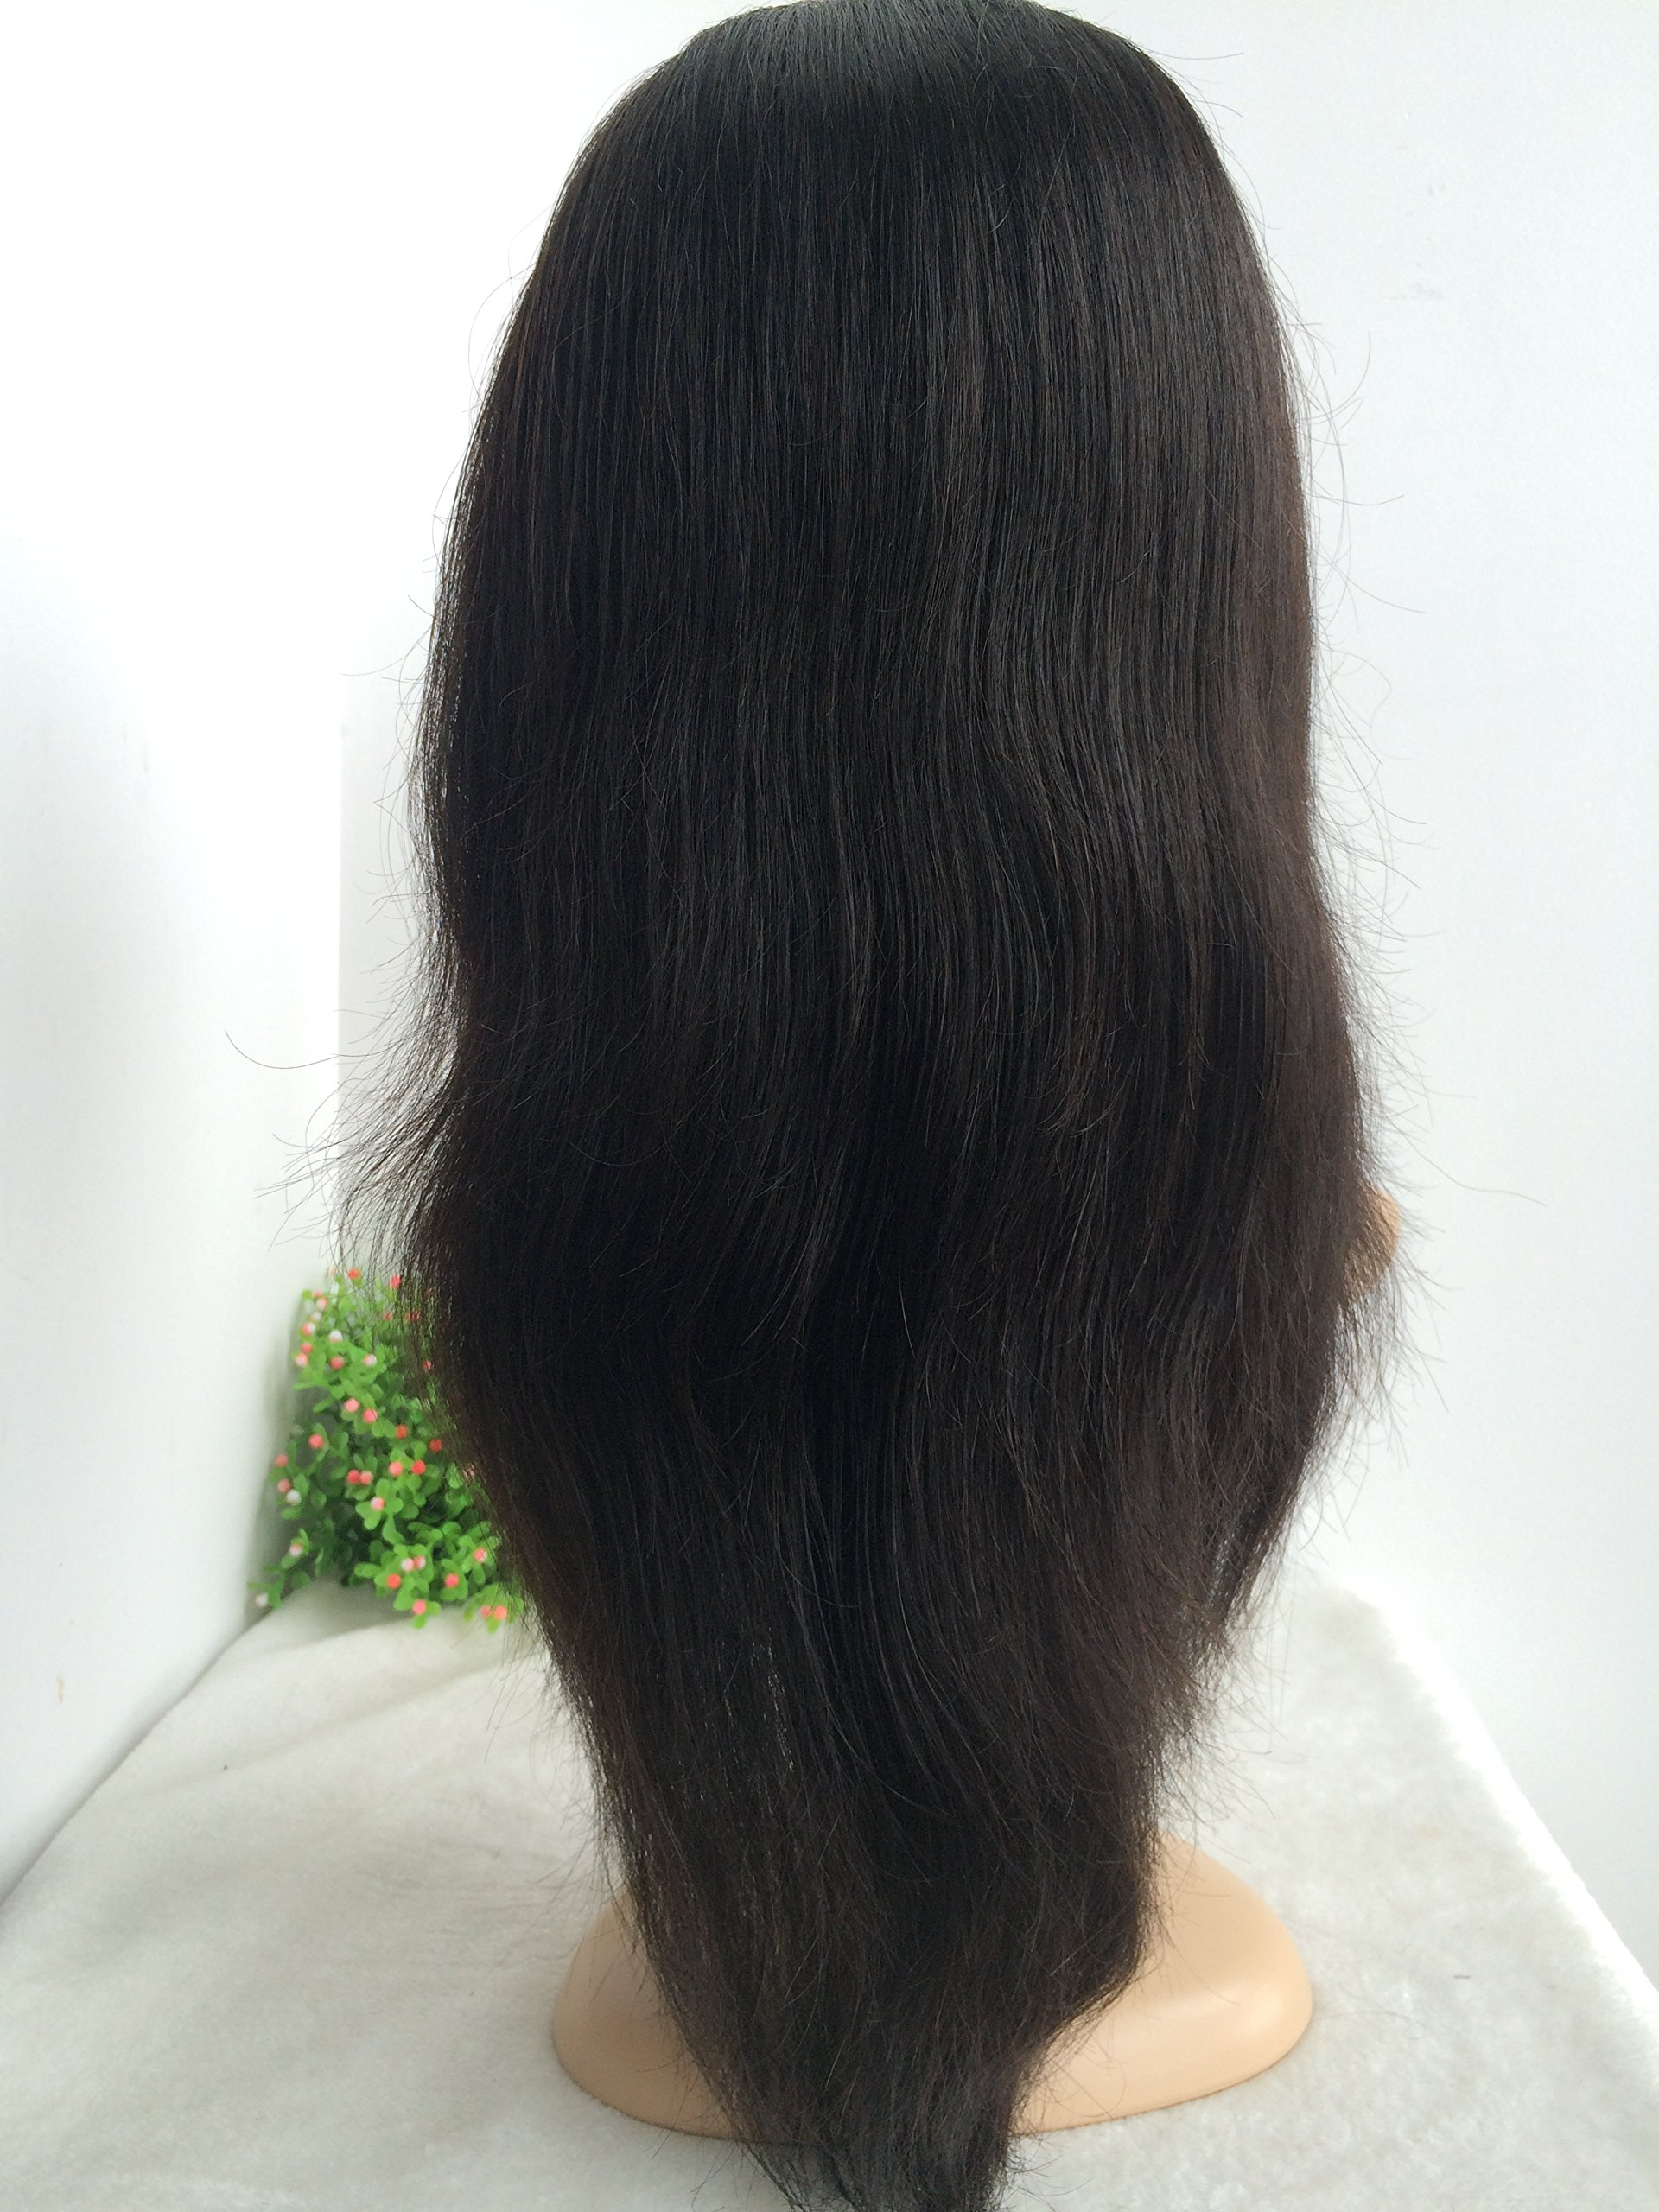 16 INCH,NATURAL COLOR,CHINESE VIRGIN SILK STRAIGHT FULL LACE SILK TOP WIG by April silk top wigs (Image #2)